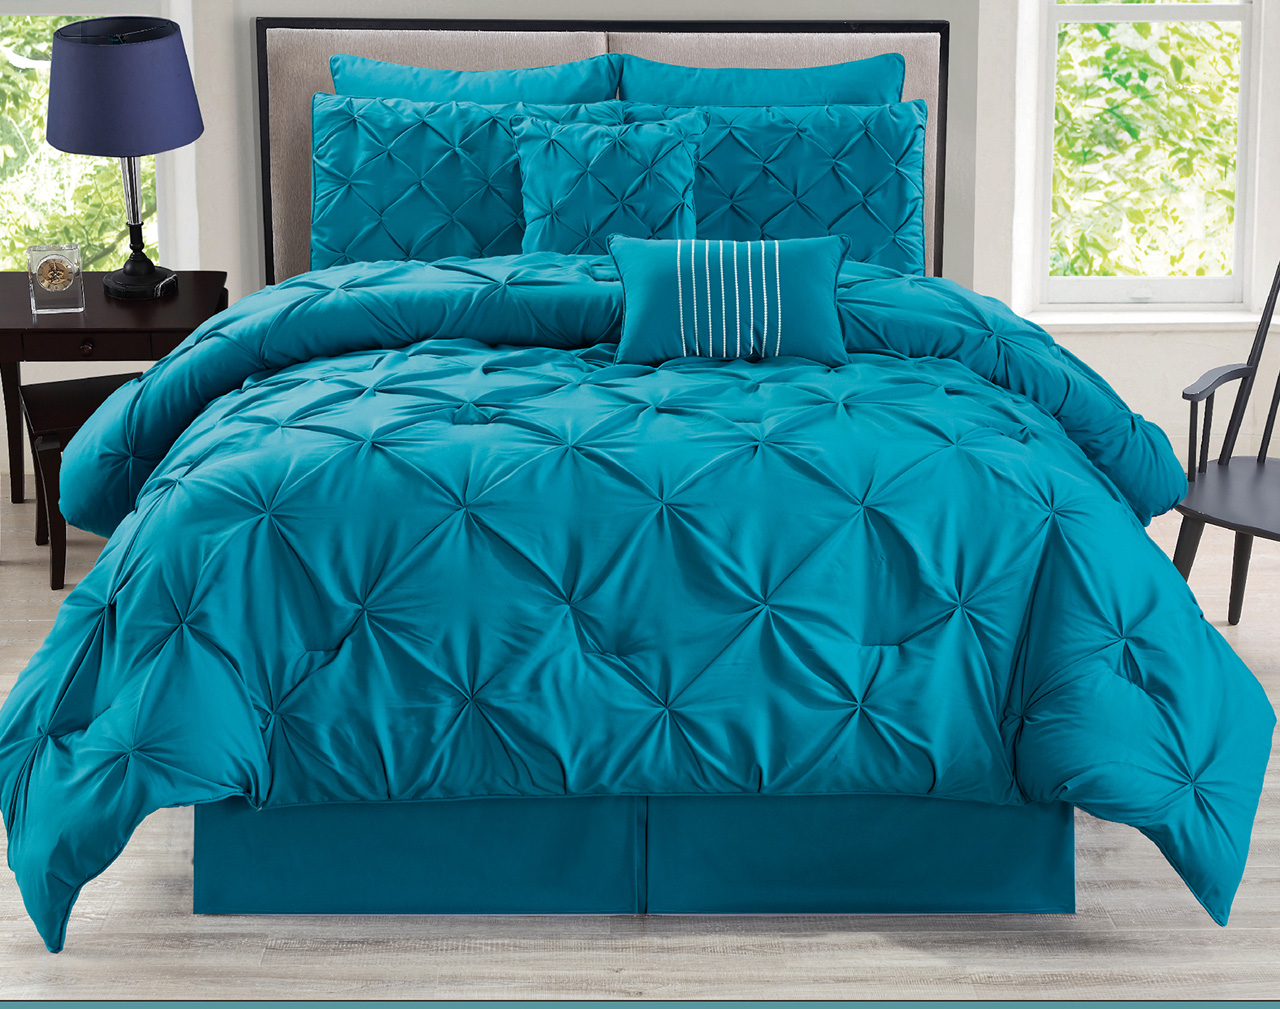 8 Piece Rochelle Pinched Pleat Teal Comforter Set Queen